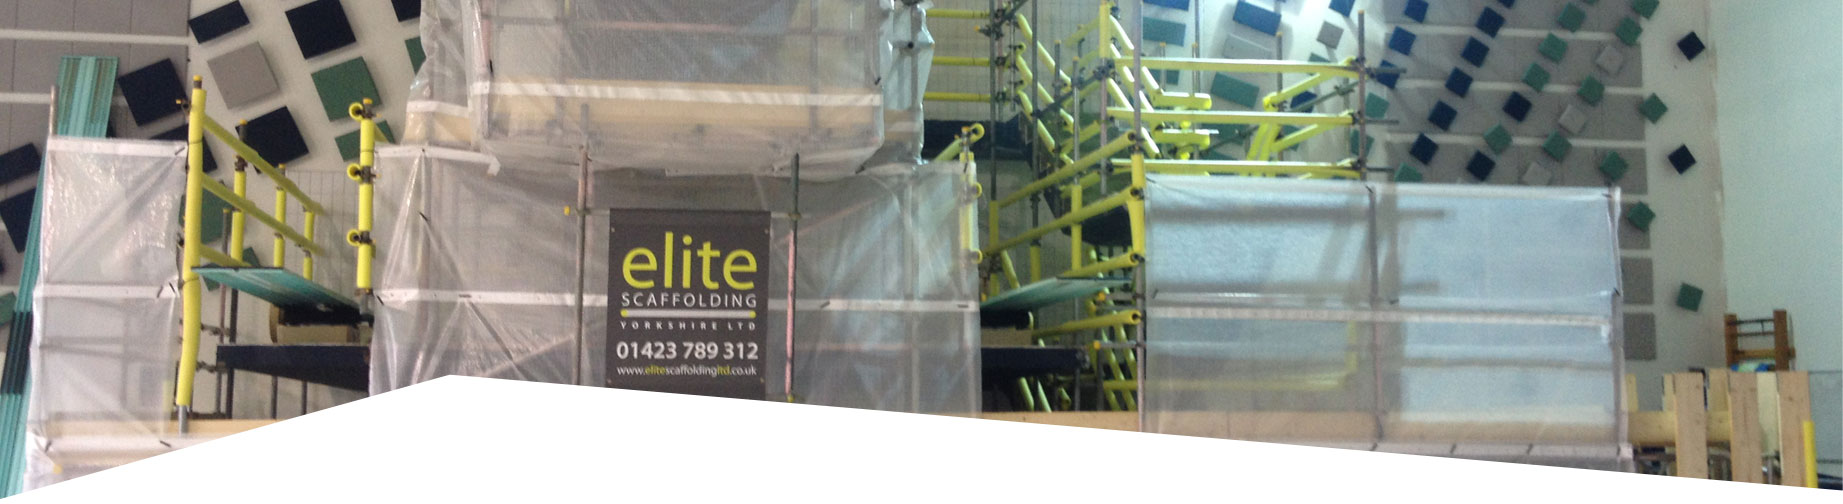 Elite Scaffolding Safety first